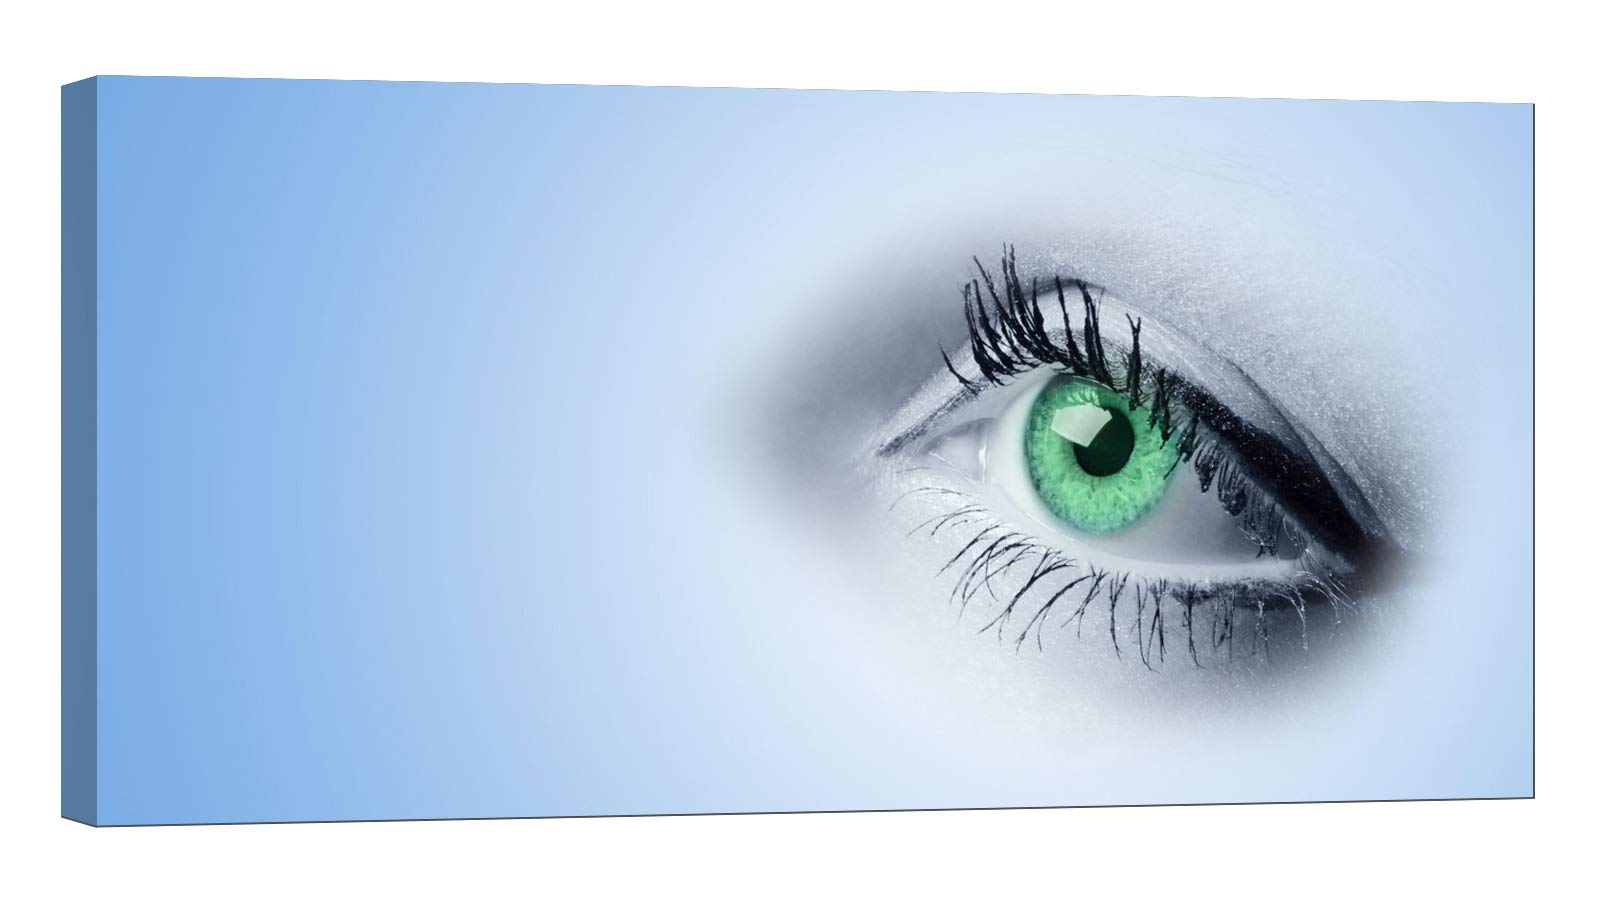 LightFairy Wall Art for Living Room - Glow in The Dark Canvas Painting - Stretched and Framed Giclee Print - Female Green Eyes - Wall Decorations for Bedroom - 32 x 16 inch